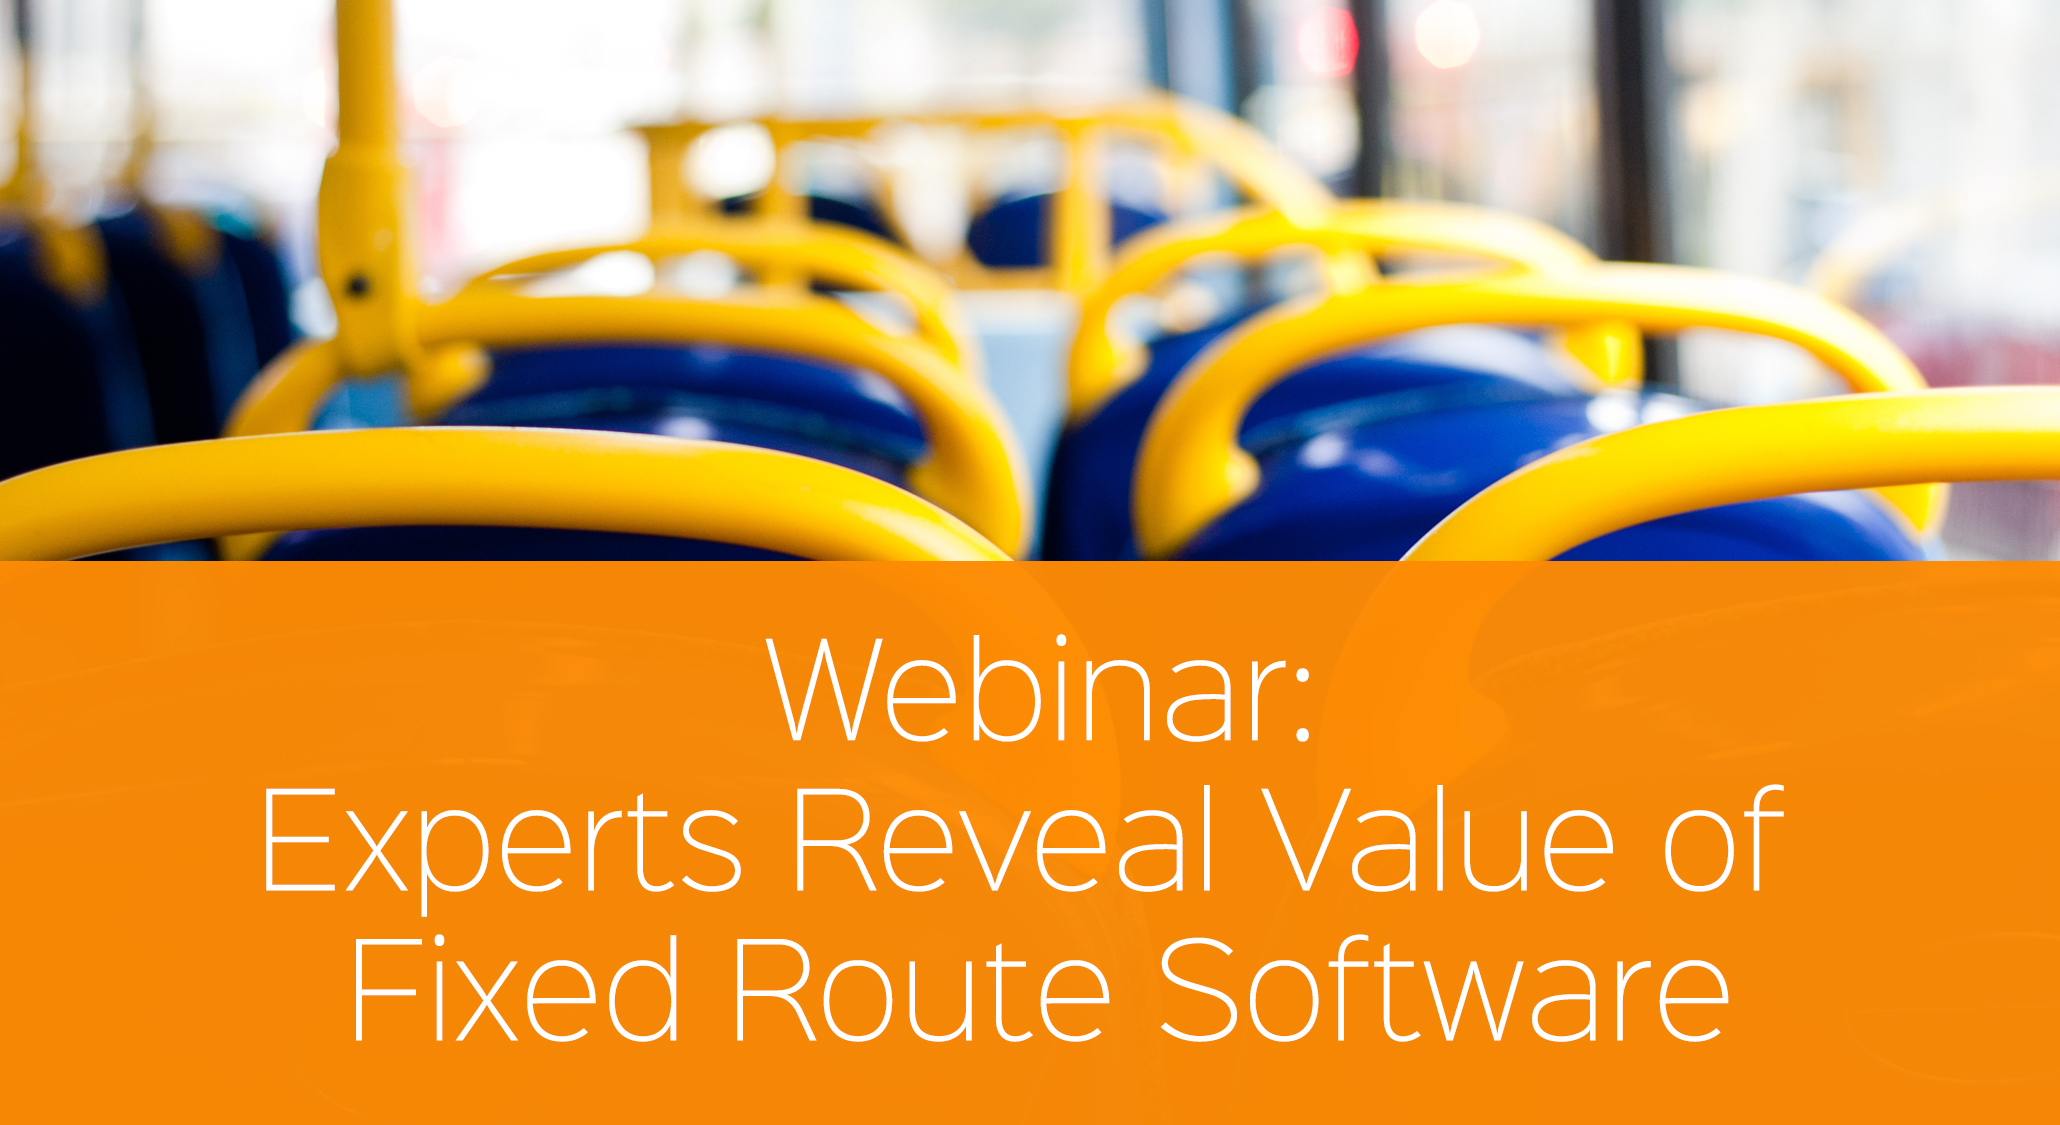 Experts Reveal Value of Fixed Route Software